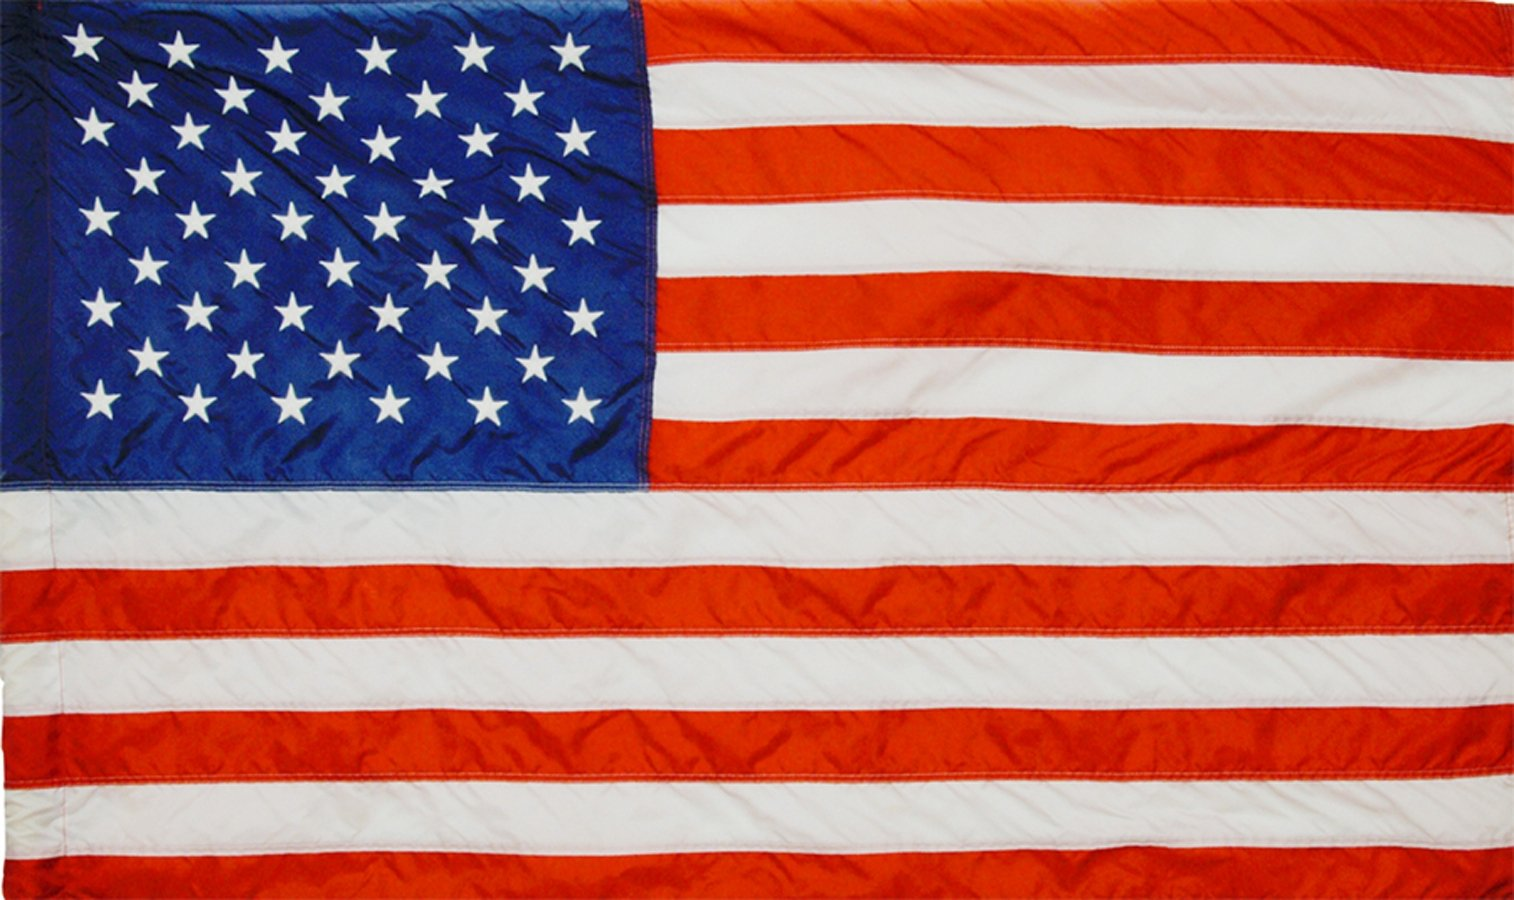 Valley Forge Flag 10 x 15 Foot Large Commercial-Grade Nylon US American Flag by Valley Forge Flag